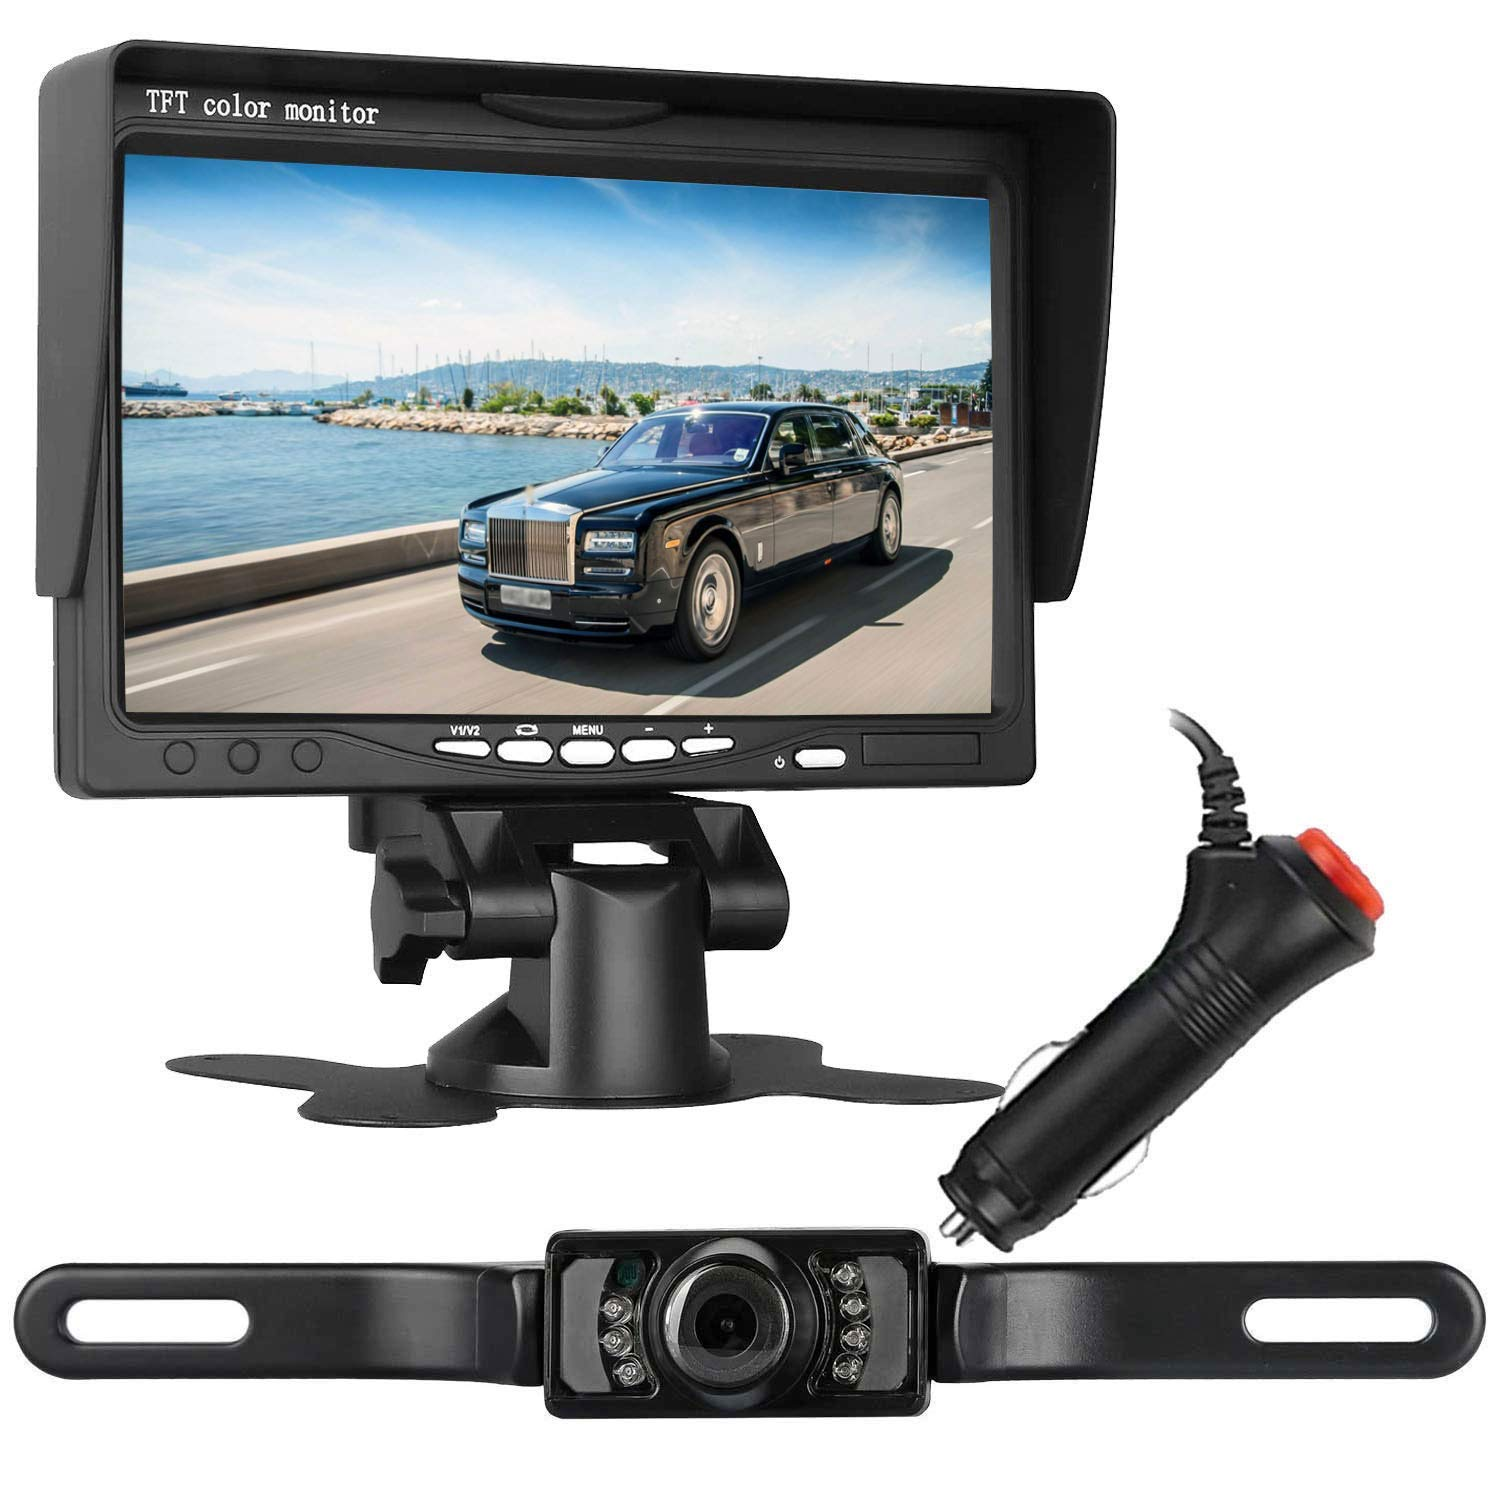 ZSMJ Rear View Backup Camera and TFT mirror Monitor Kit parking systems Single power for Rear view Fulltime View options for Car Vehicle Truck Van Caravan Trailers Camper (7 inch wired)